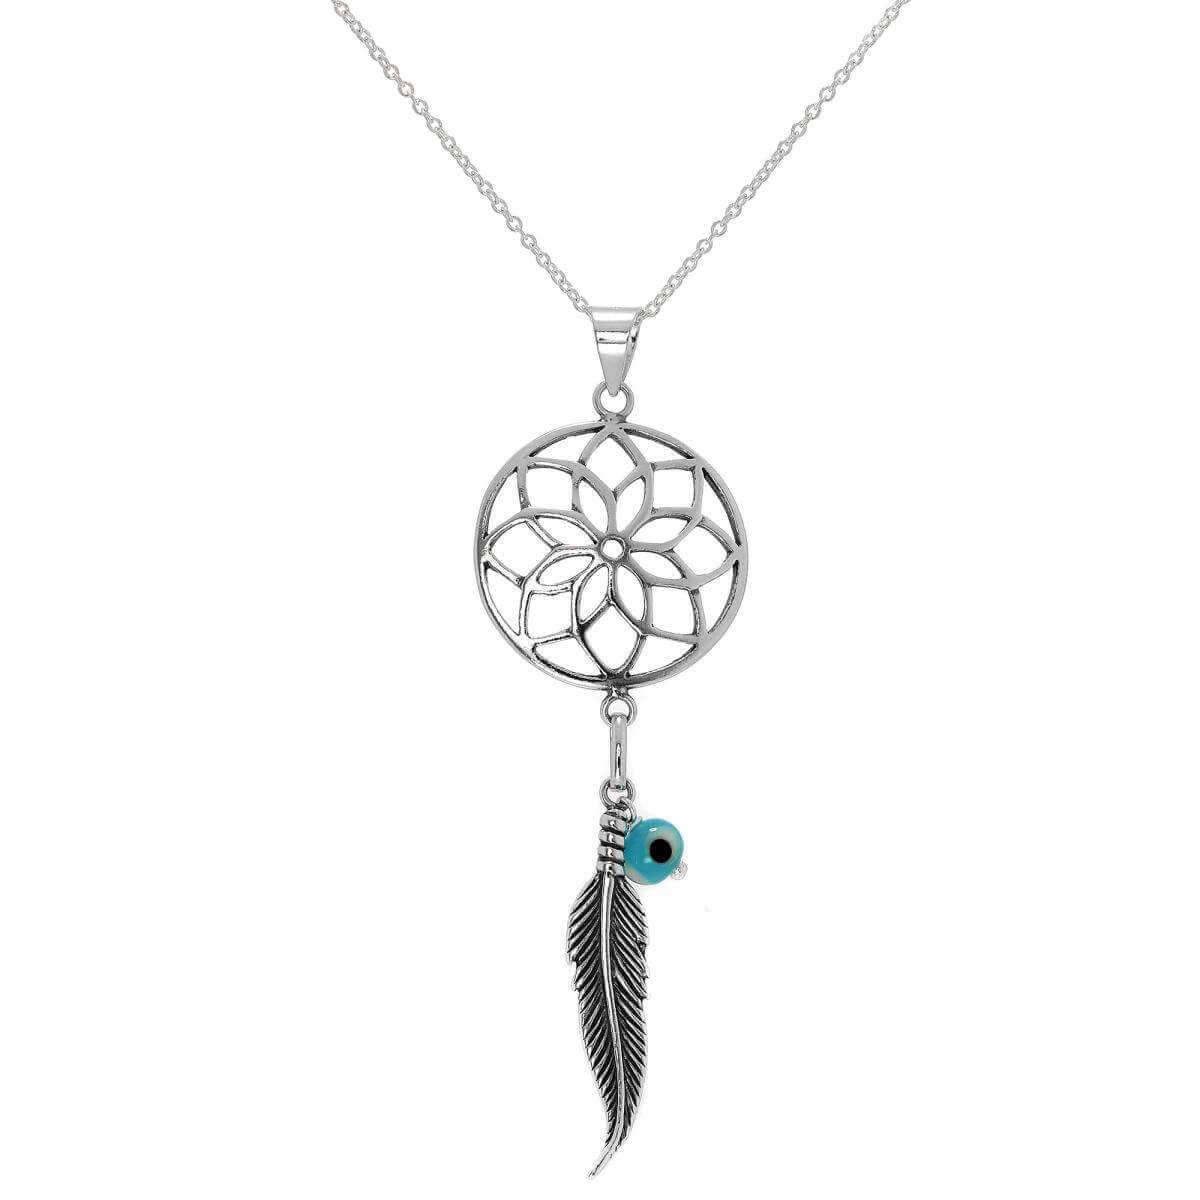 Large Sterling Silver Dreamcatcher Pendant Necklace